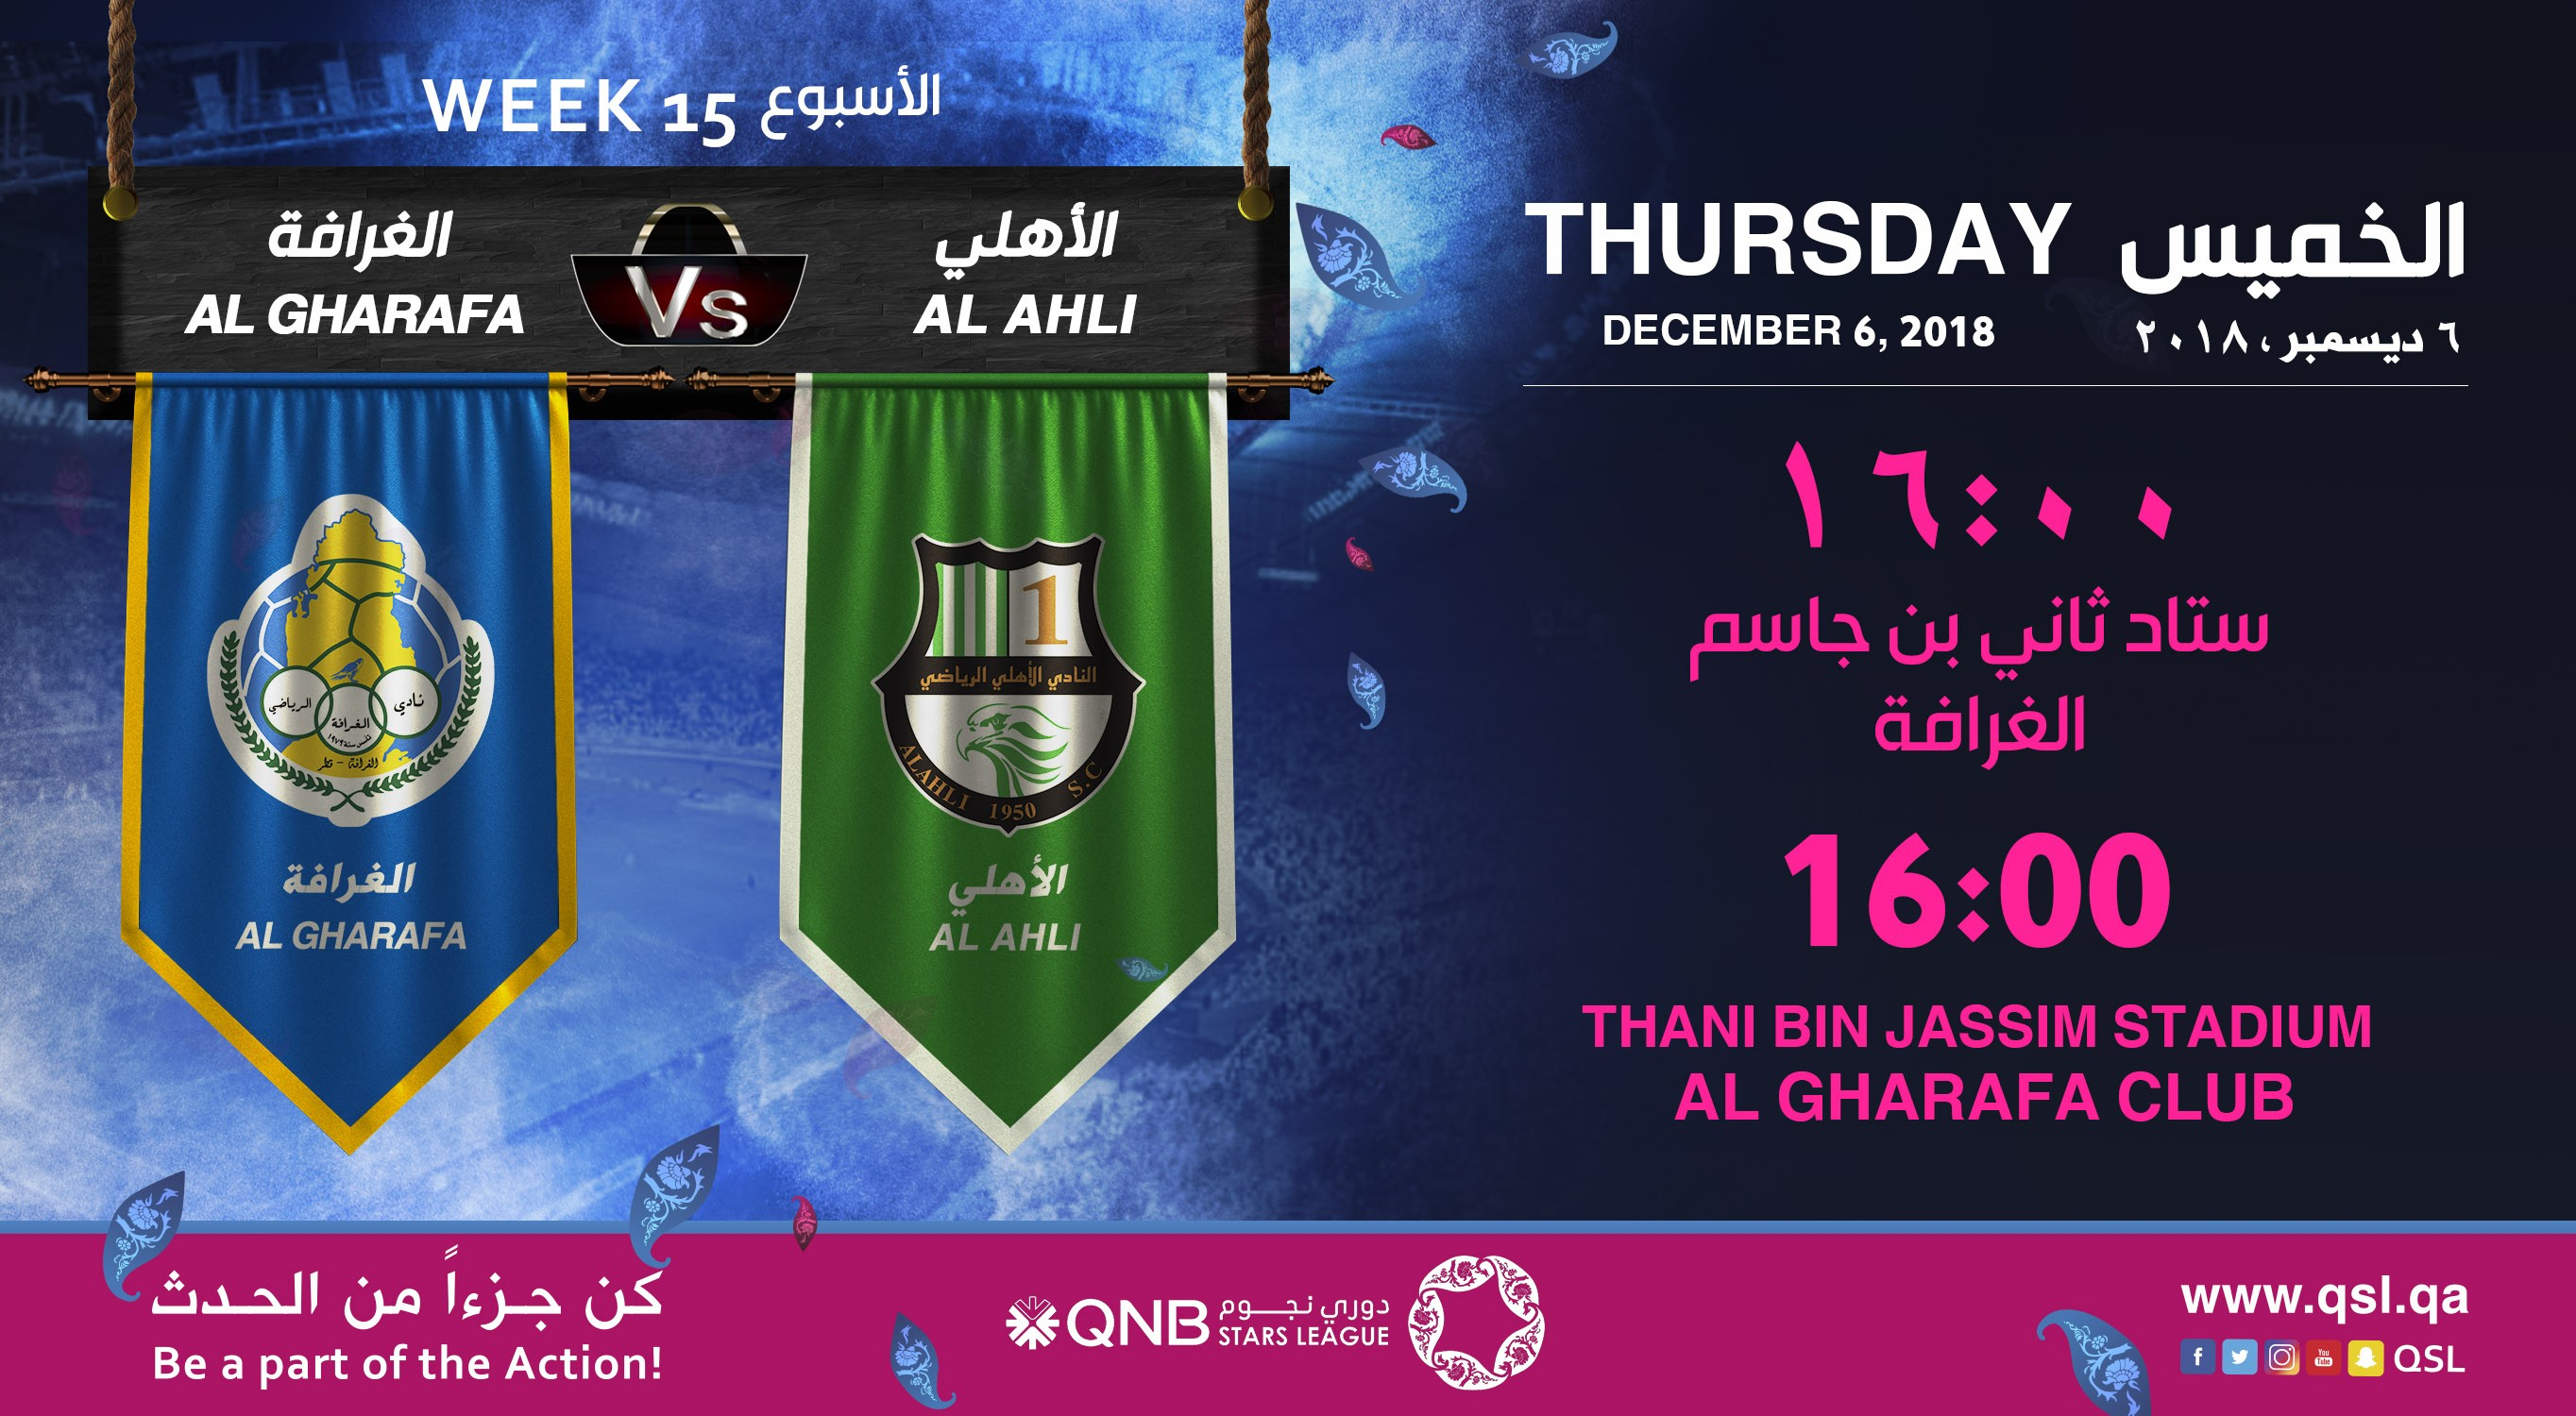 QNB Stars League Week 15 — Al Gharafa vs Al Ahli